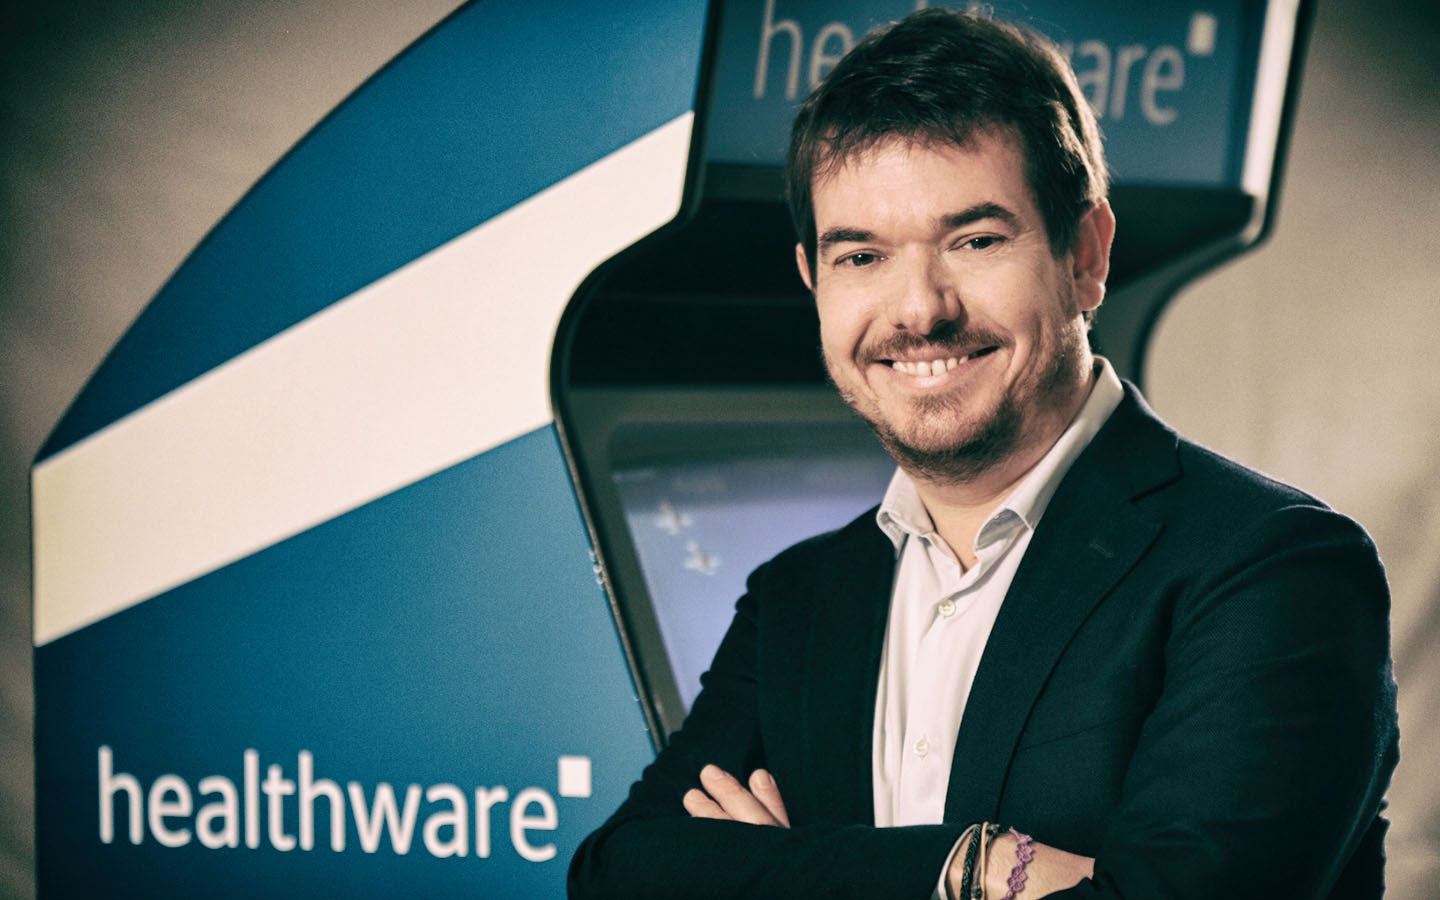 Roberto Ascione: un italiano tra i top leader della Digital Health